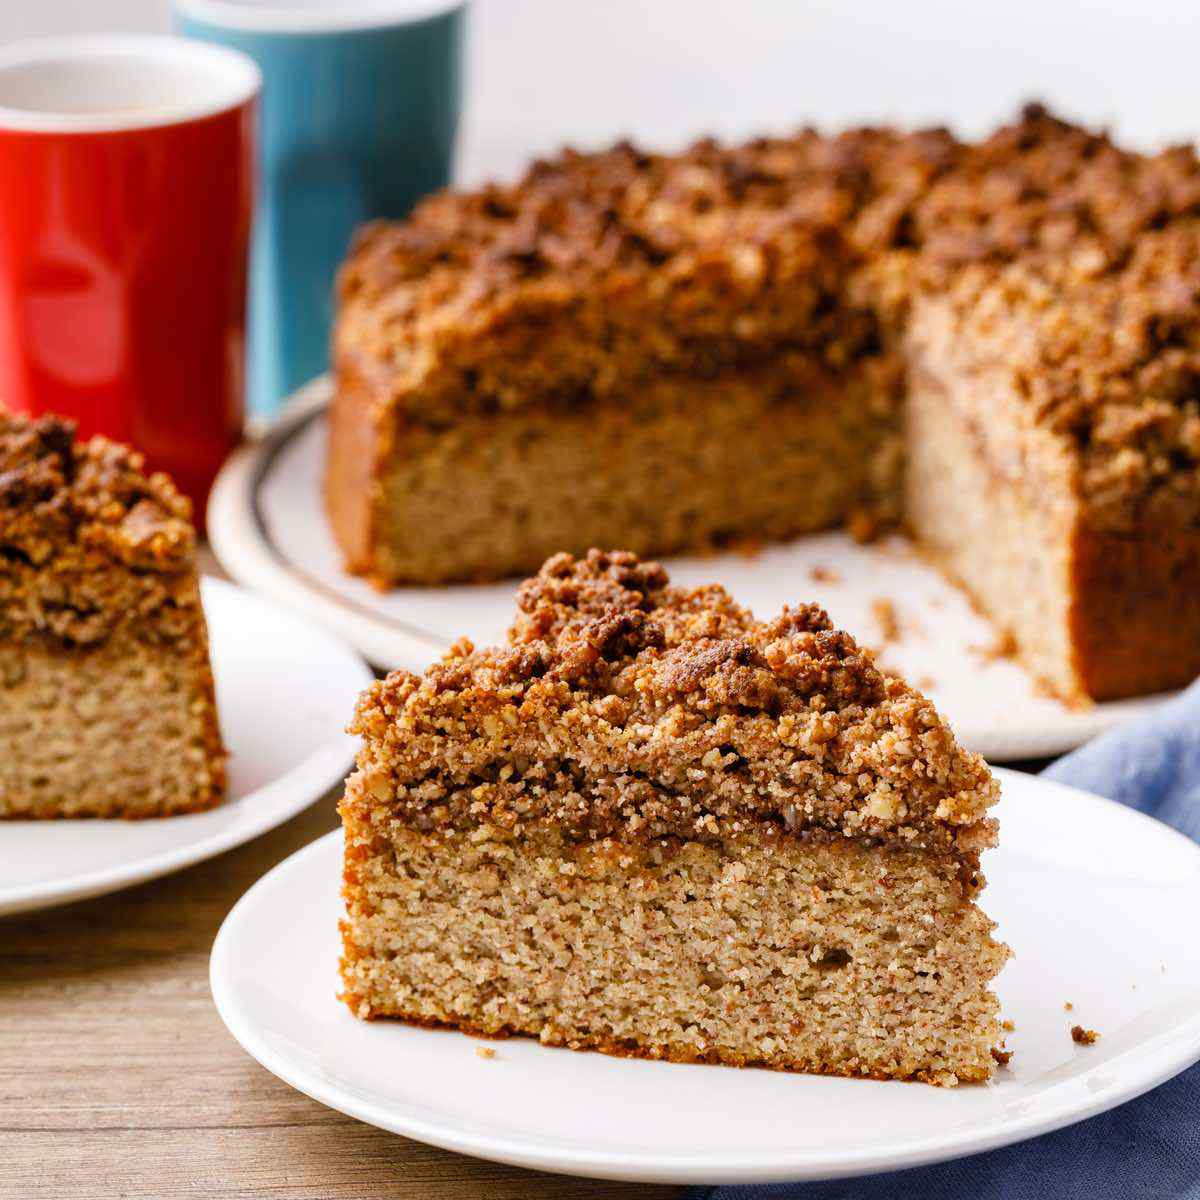 Low Carb Keto Coffee Cake With A Crumble Top Keto Pots